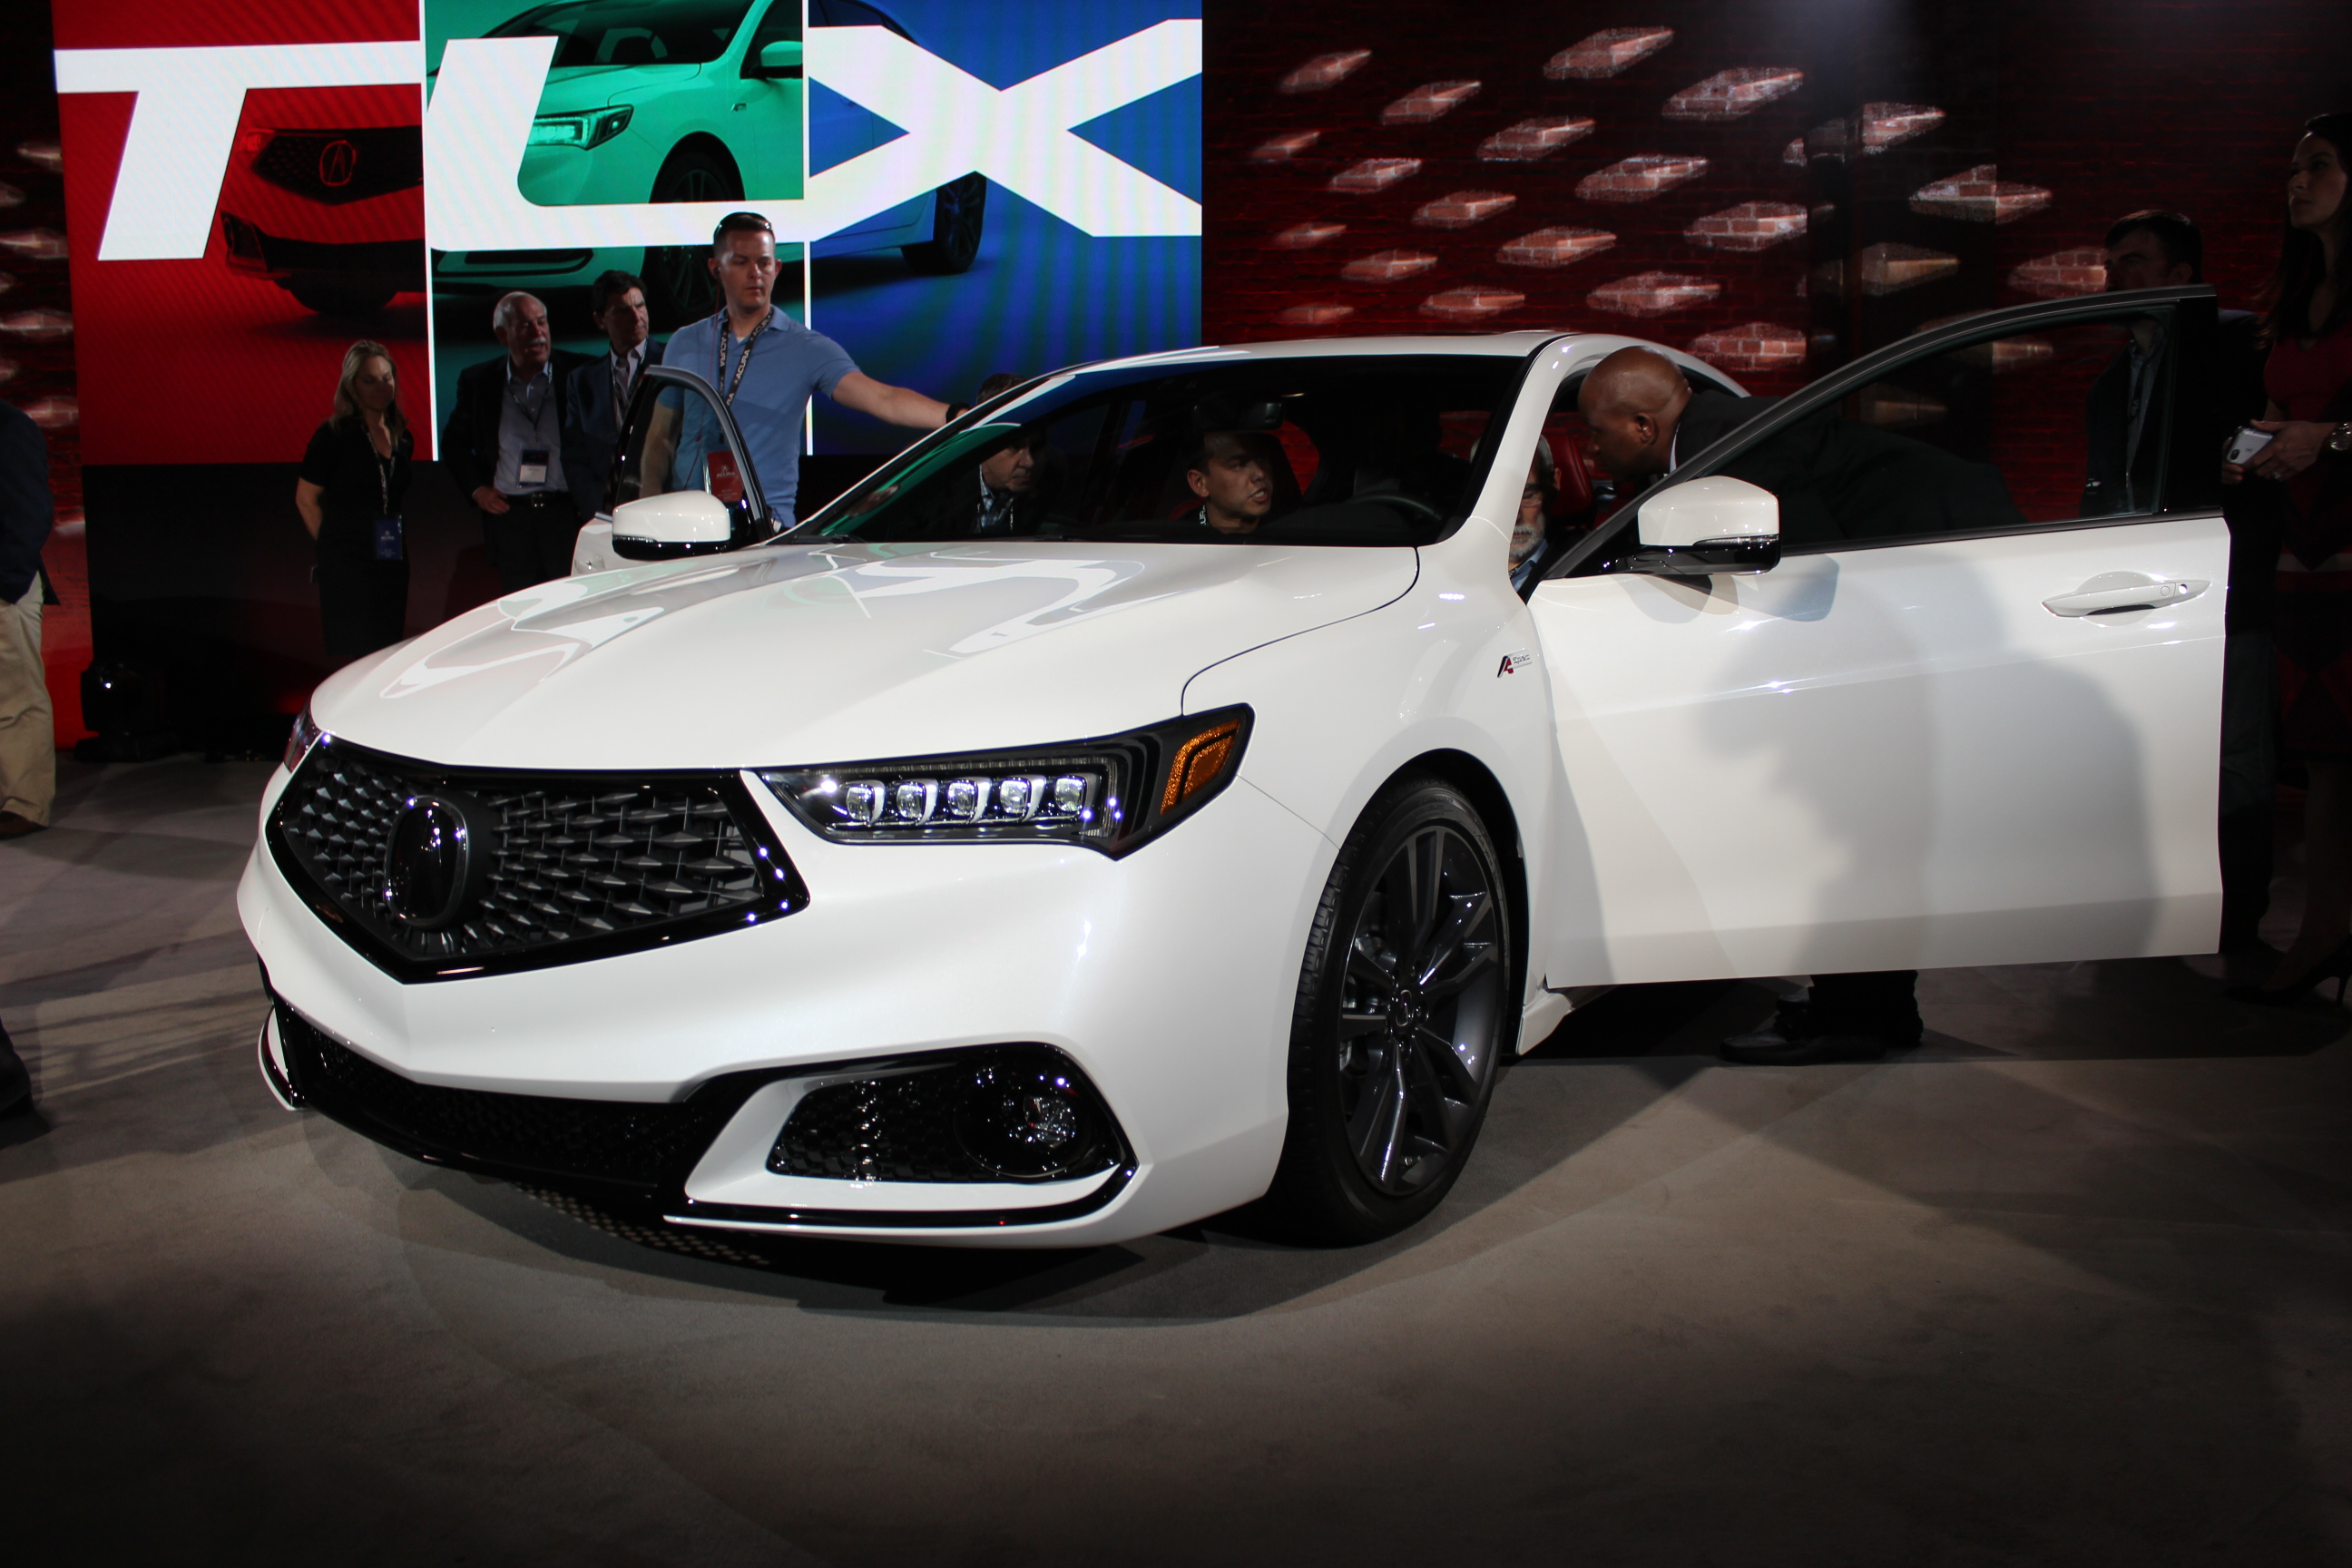 2015 Acura Tlx Tech >> The 2018 Acura TLX is unveiled ahead of the New York Auto ...